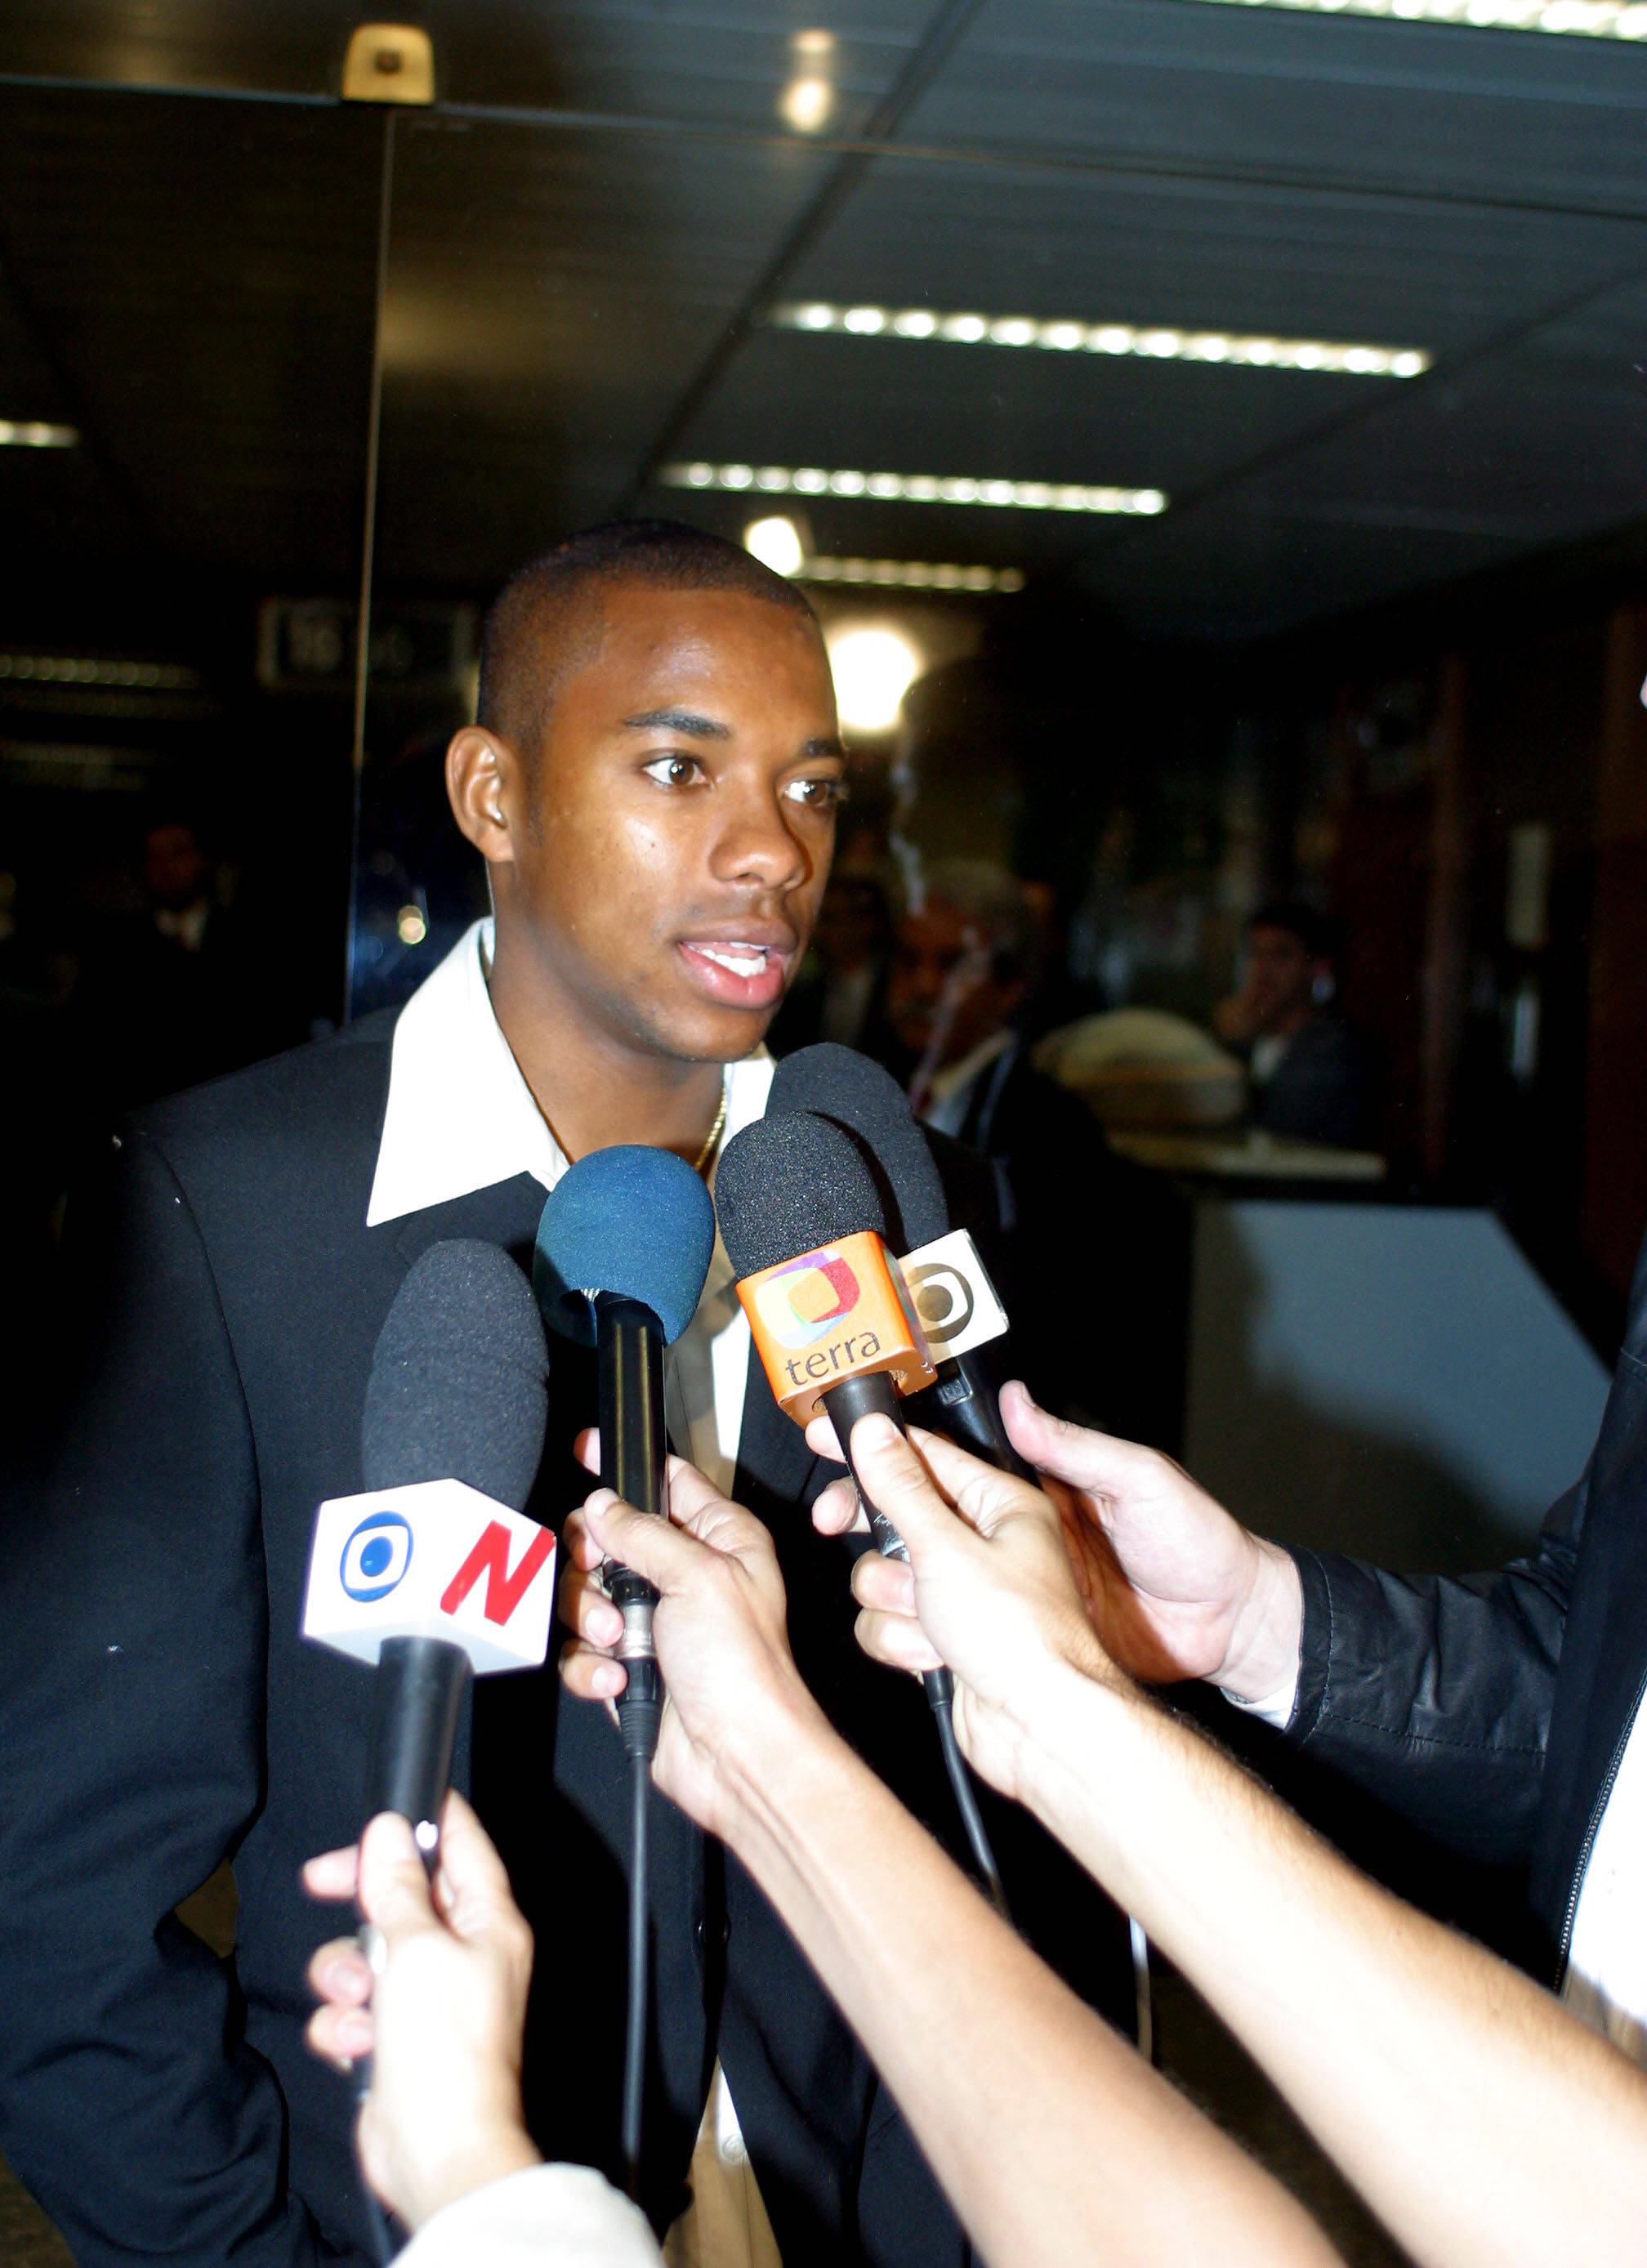 Robinho (Real Madrid)